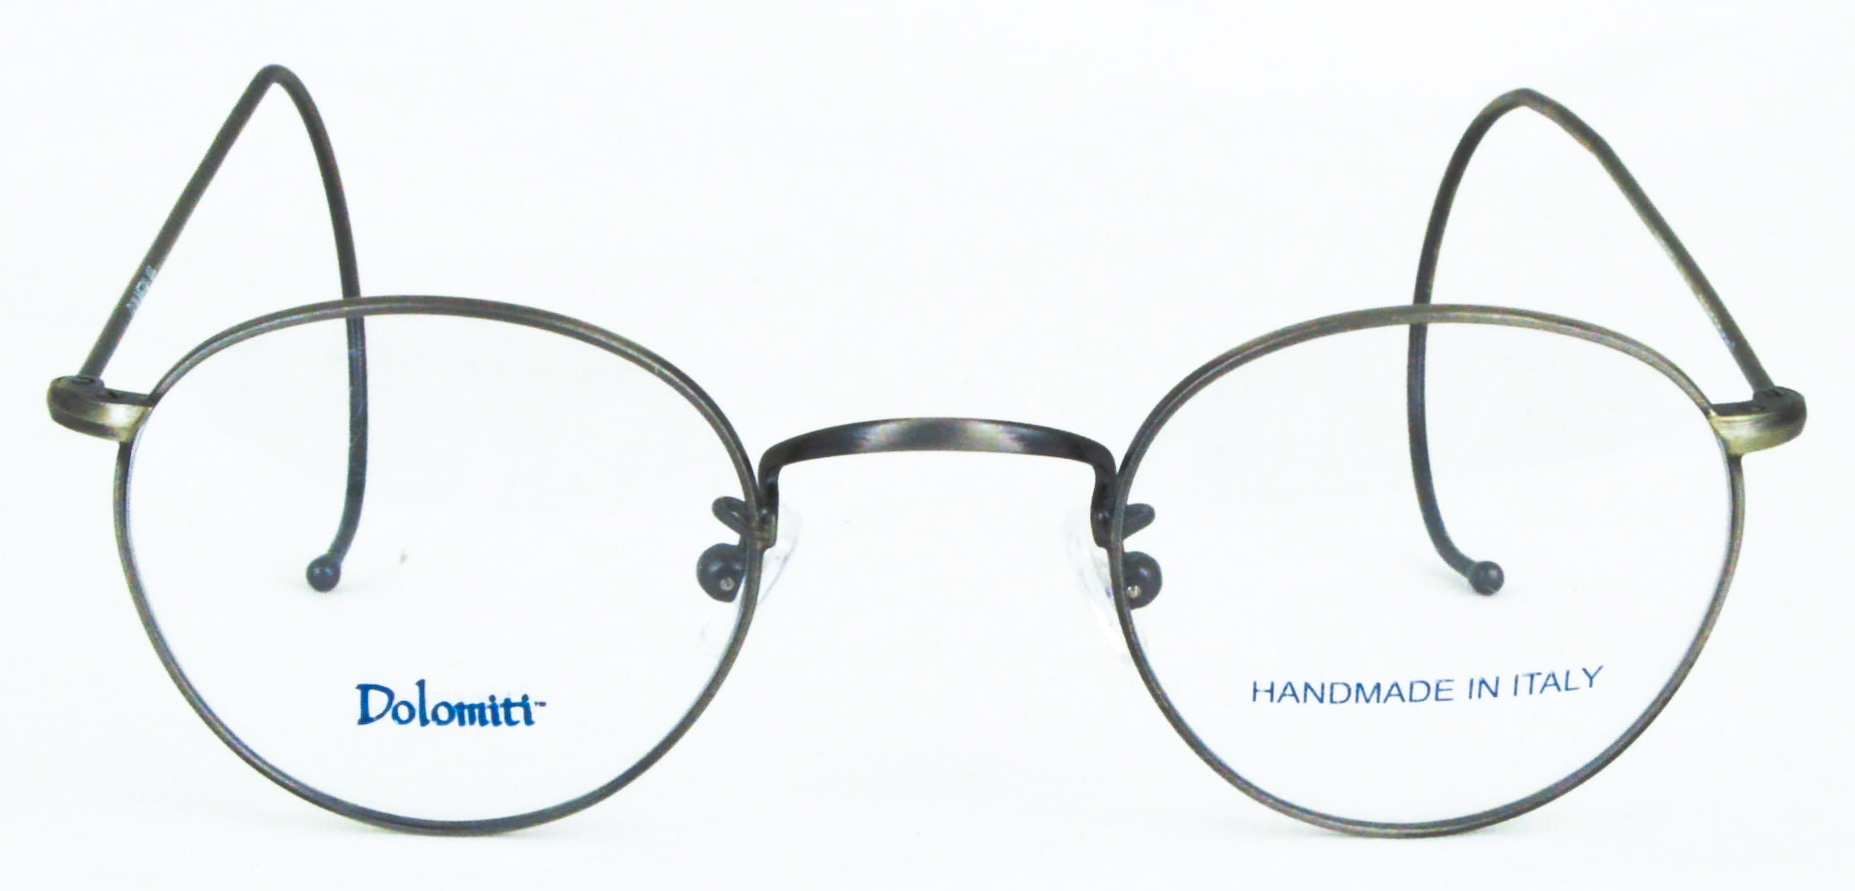 b936c38a3ef58 Eyeglasses  Brand Dolomiti Eyewear Lifetime-Eyecare.com has the most ...